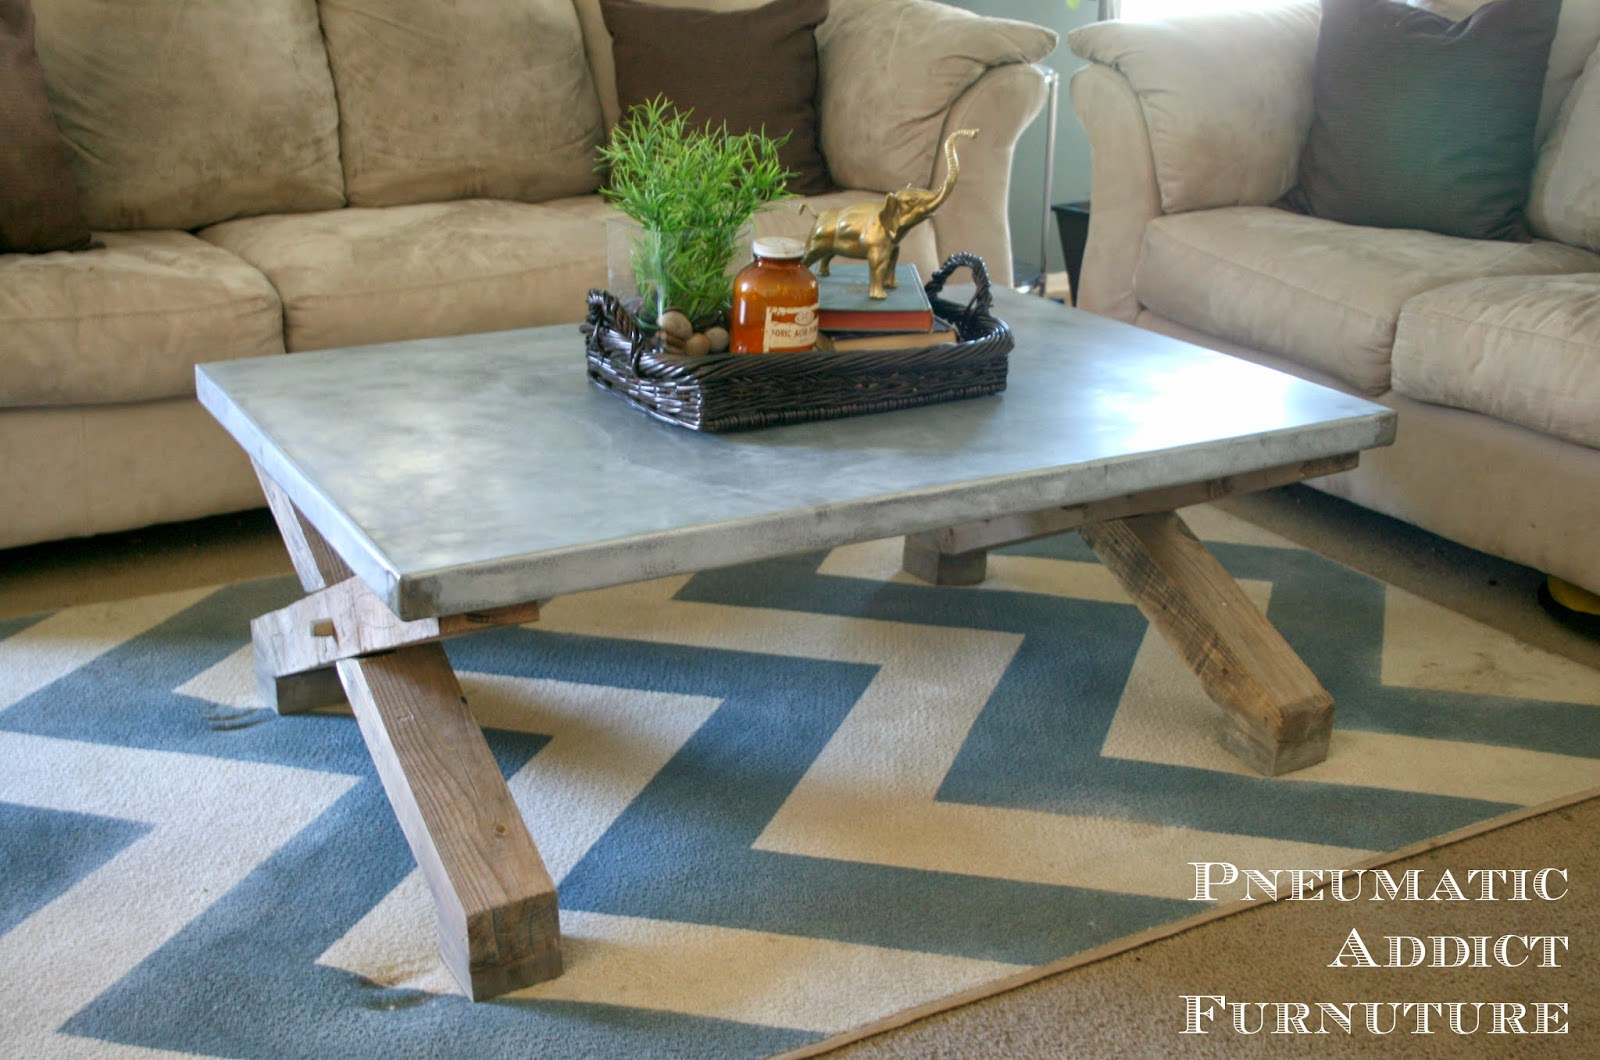 Pneumatic Addict : Zinc Top Coffee Table Tutorial: Pottery Barn Knock Off